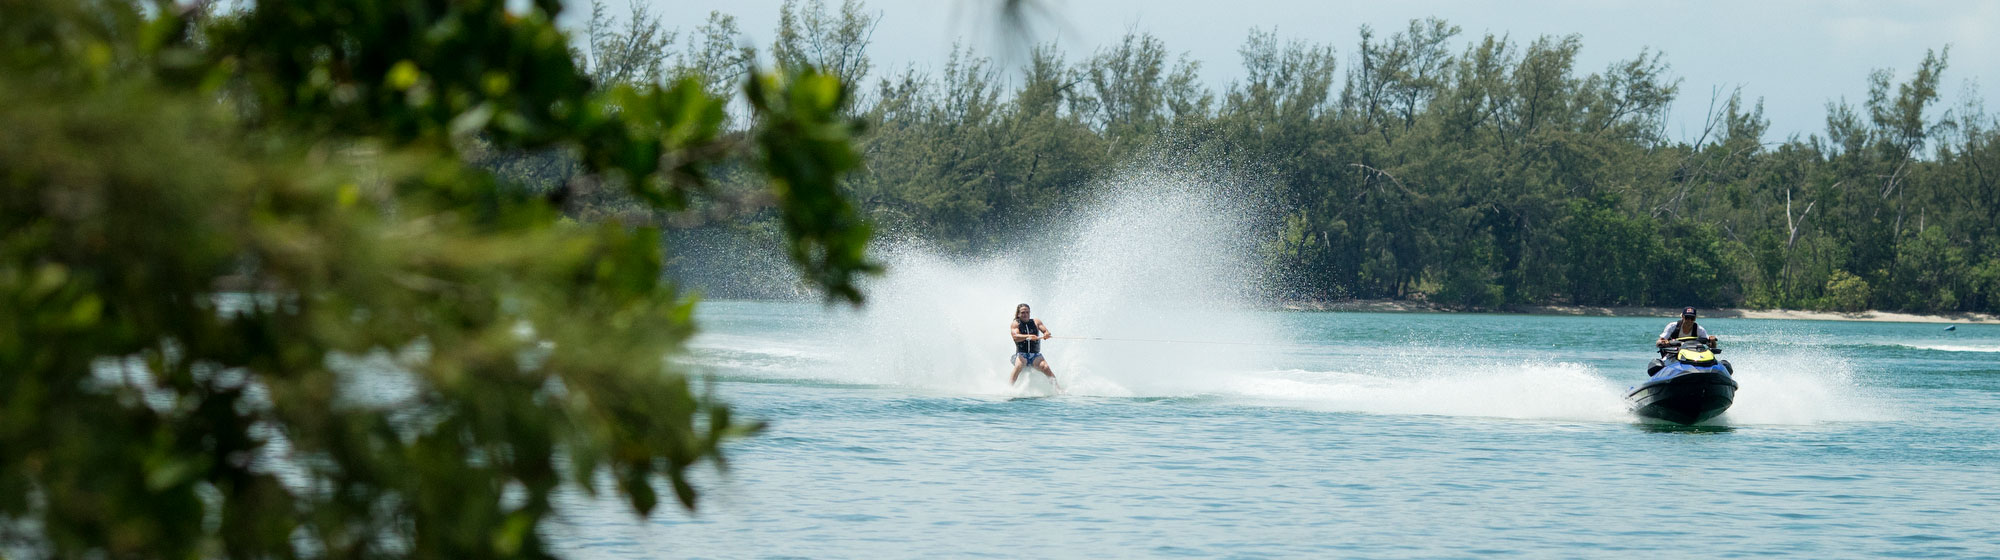 Woman doing Wakeskate towed by a Sea-doo WAKE PRO